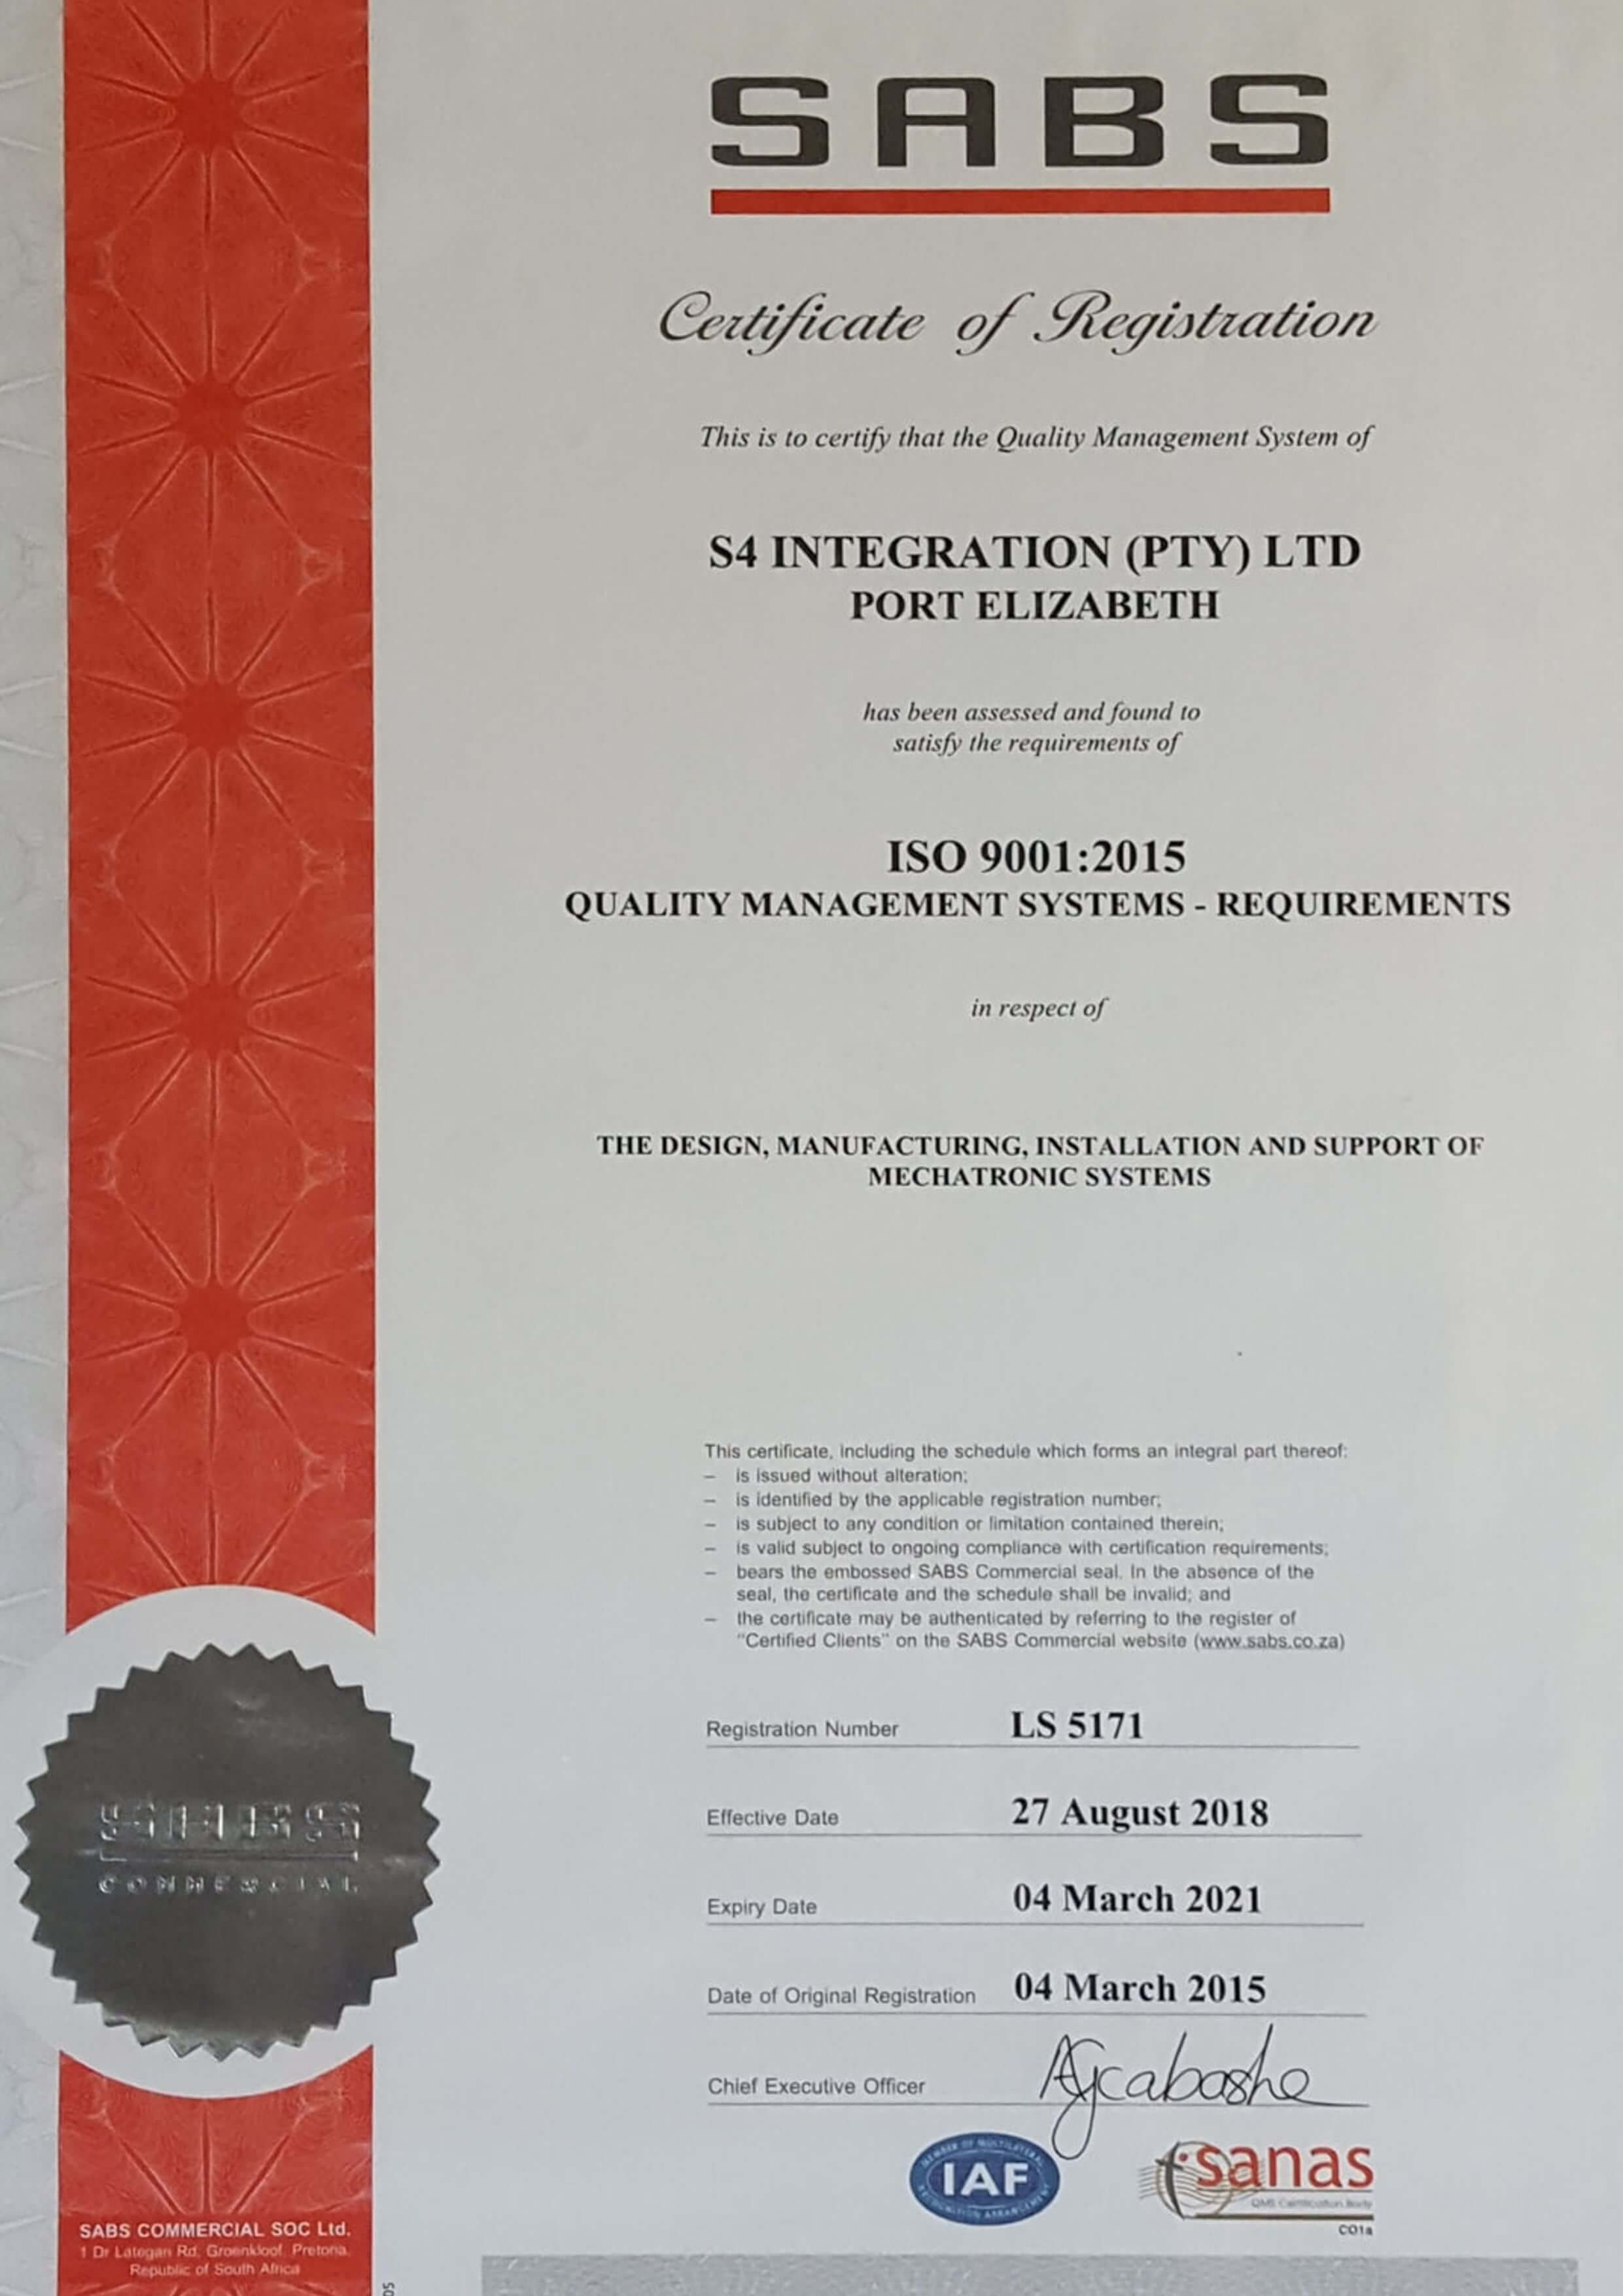 ISO 9001:2015 Certifcation